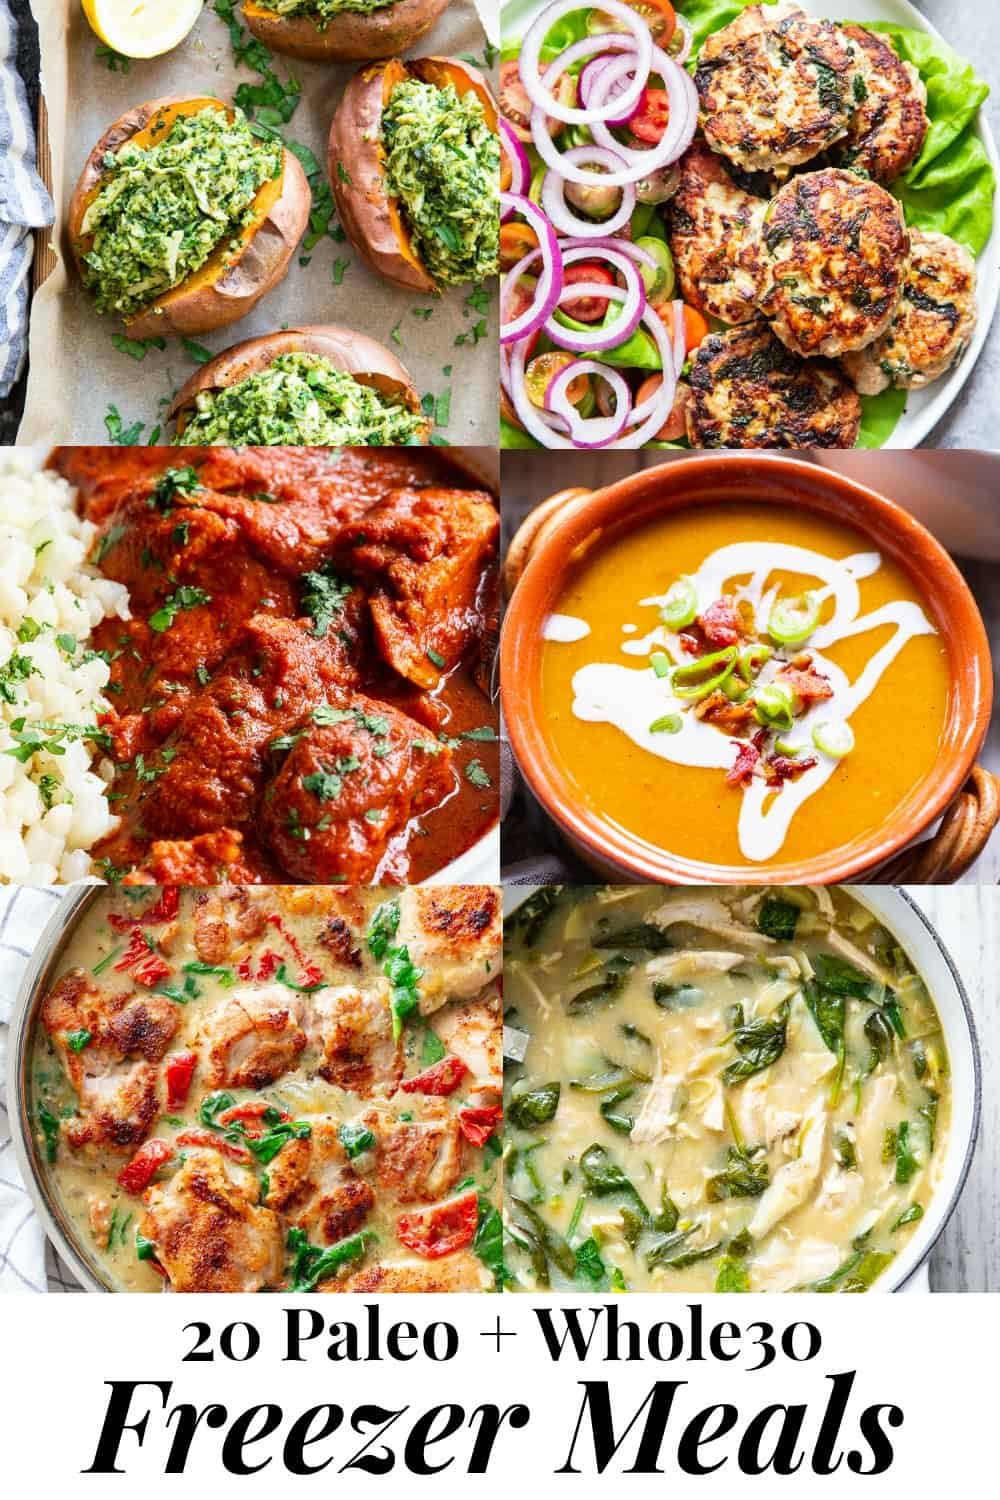 These paleo freezer meals are all perfect to make ahead of time, freeze and reheat! From soups to stuffed sweet potatoes, meatballs, instant pot meals, and zucchini lasagna, everything in this roundup is freezer friendly, packed with flavor, and also Whole30 compliant! Save this roundup for when those busy times when you need great healthy make ahead meals.